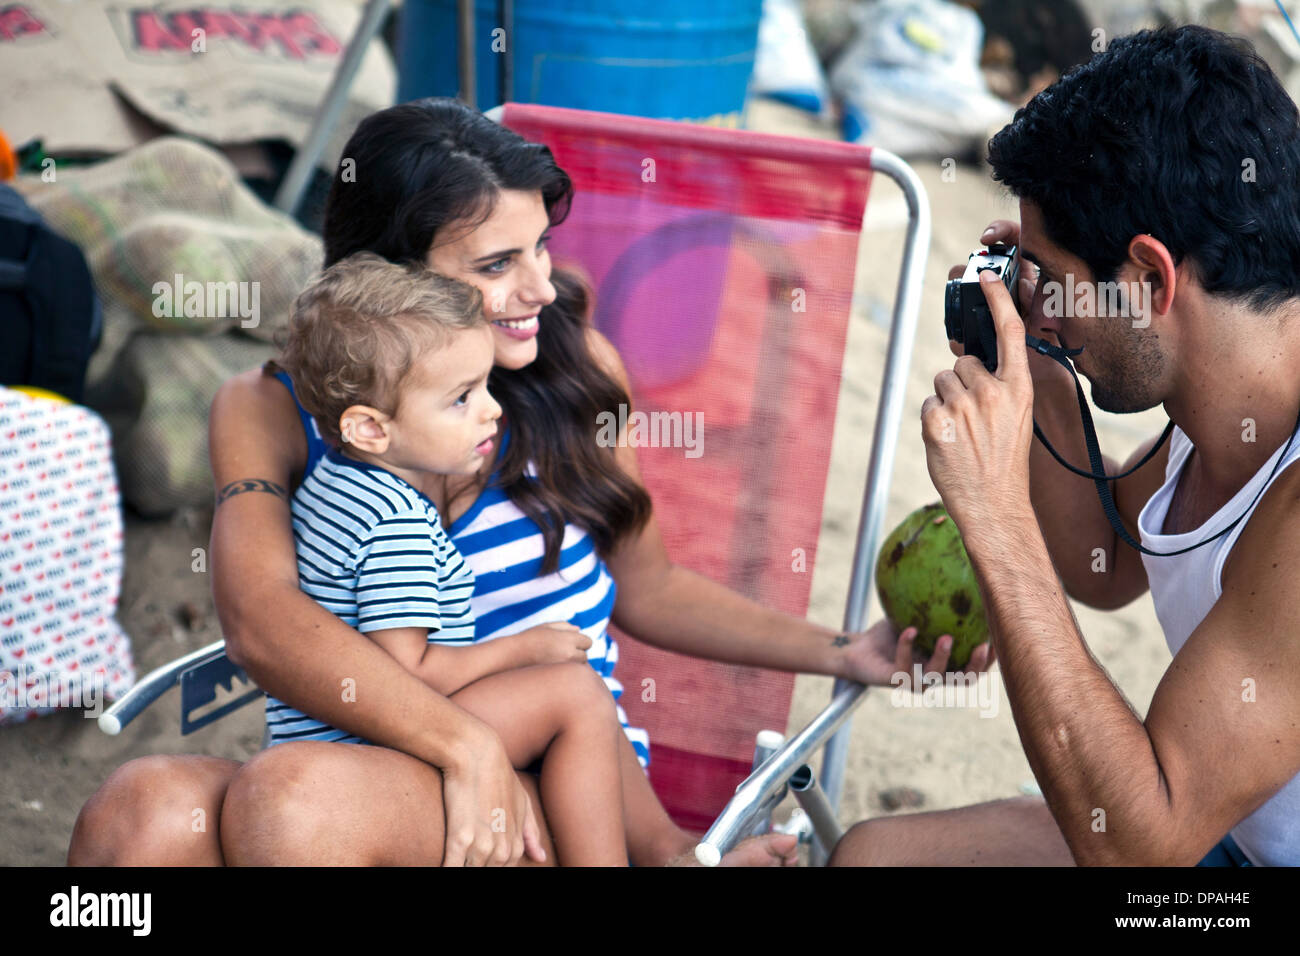 Mother and son, father taking photograph - Stock Image